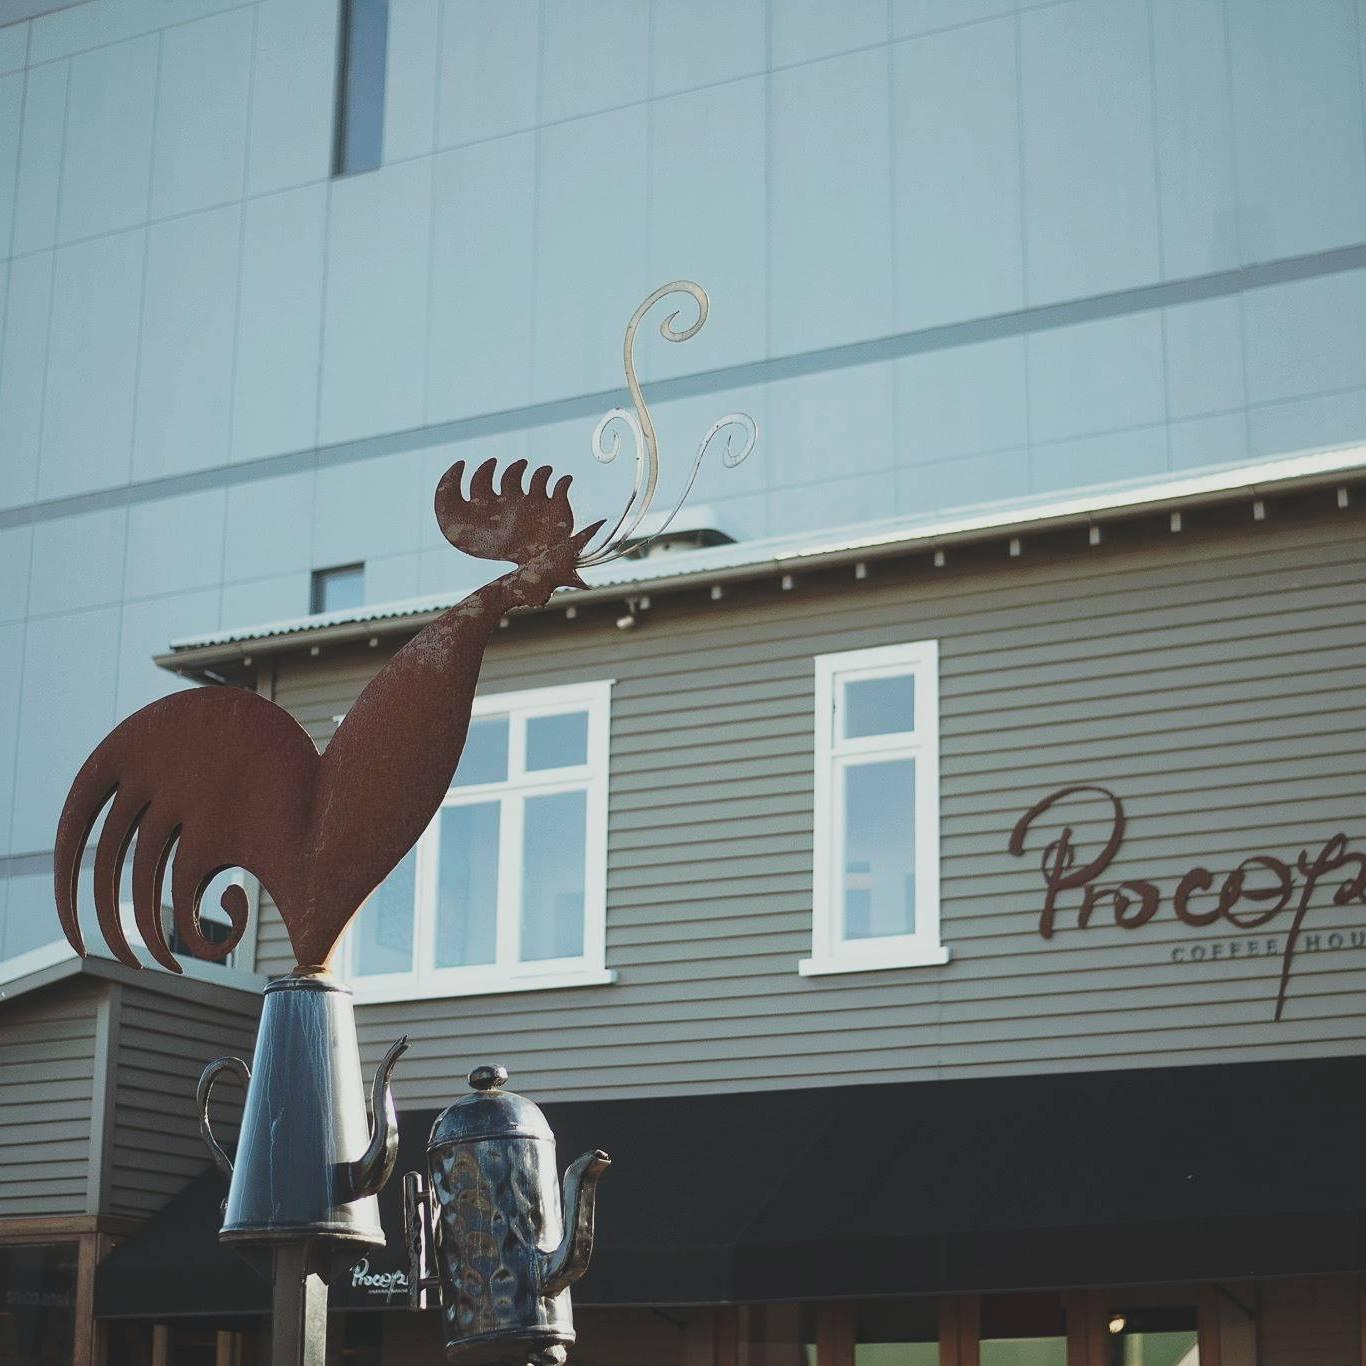 Procope Coffee House